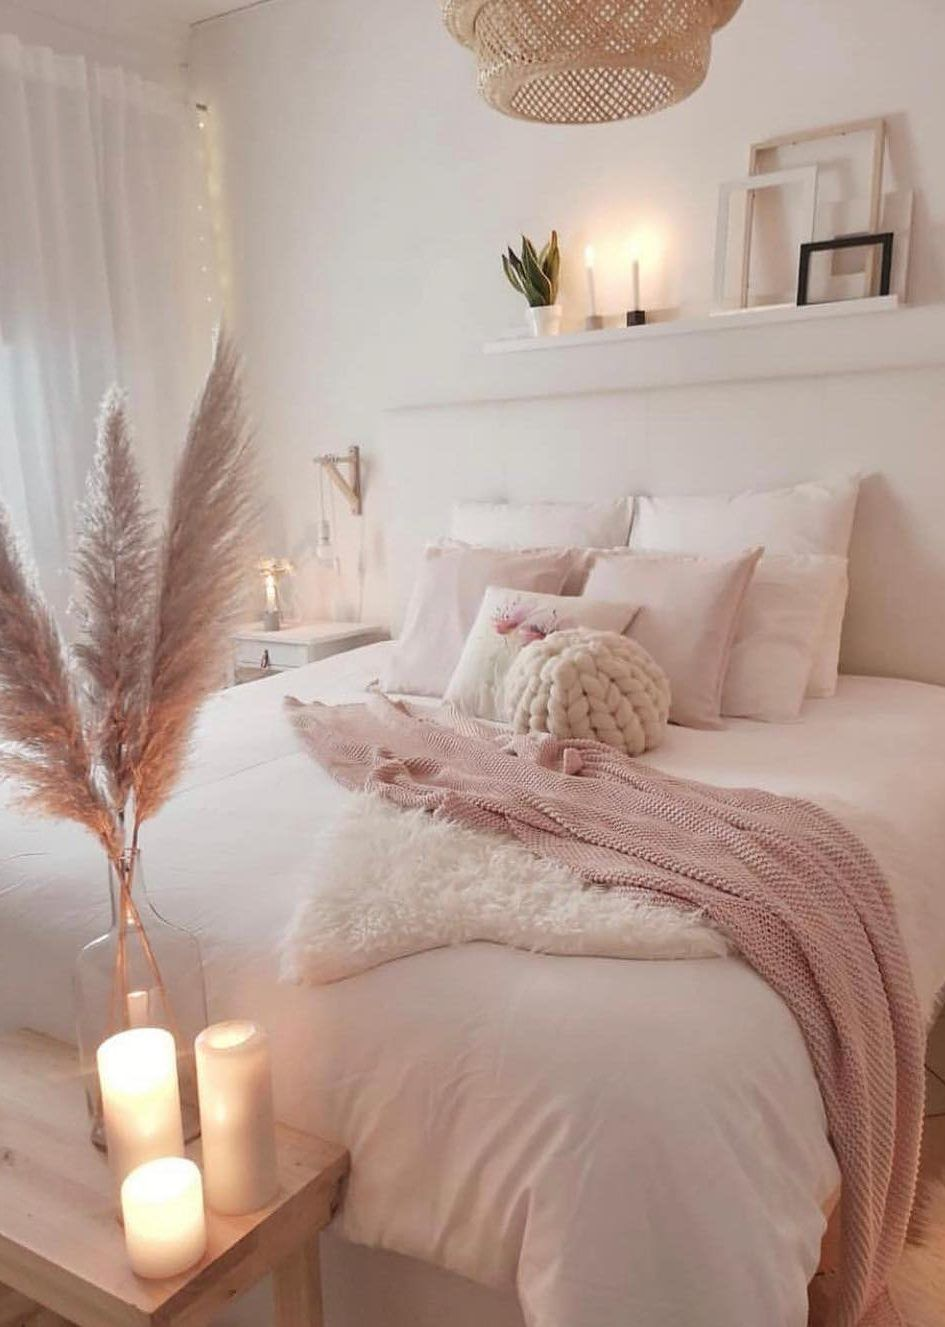 16+ Small and Cute Bedroom Designs and Ideas for This Year